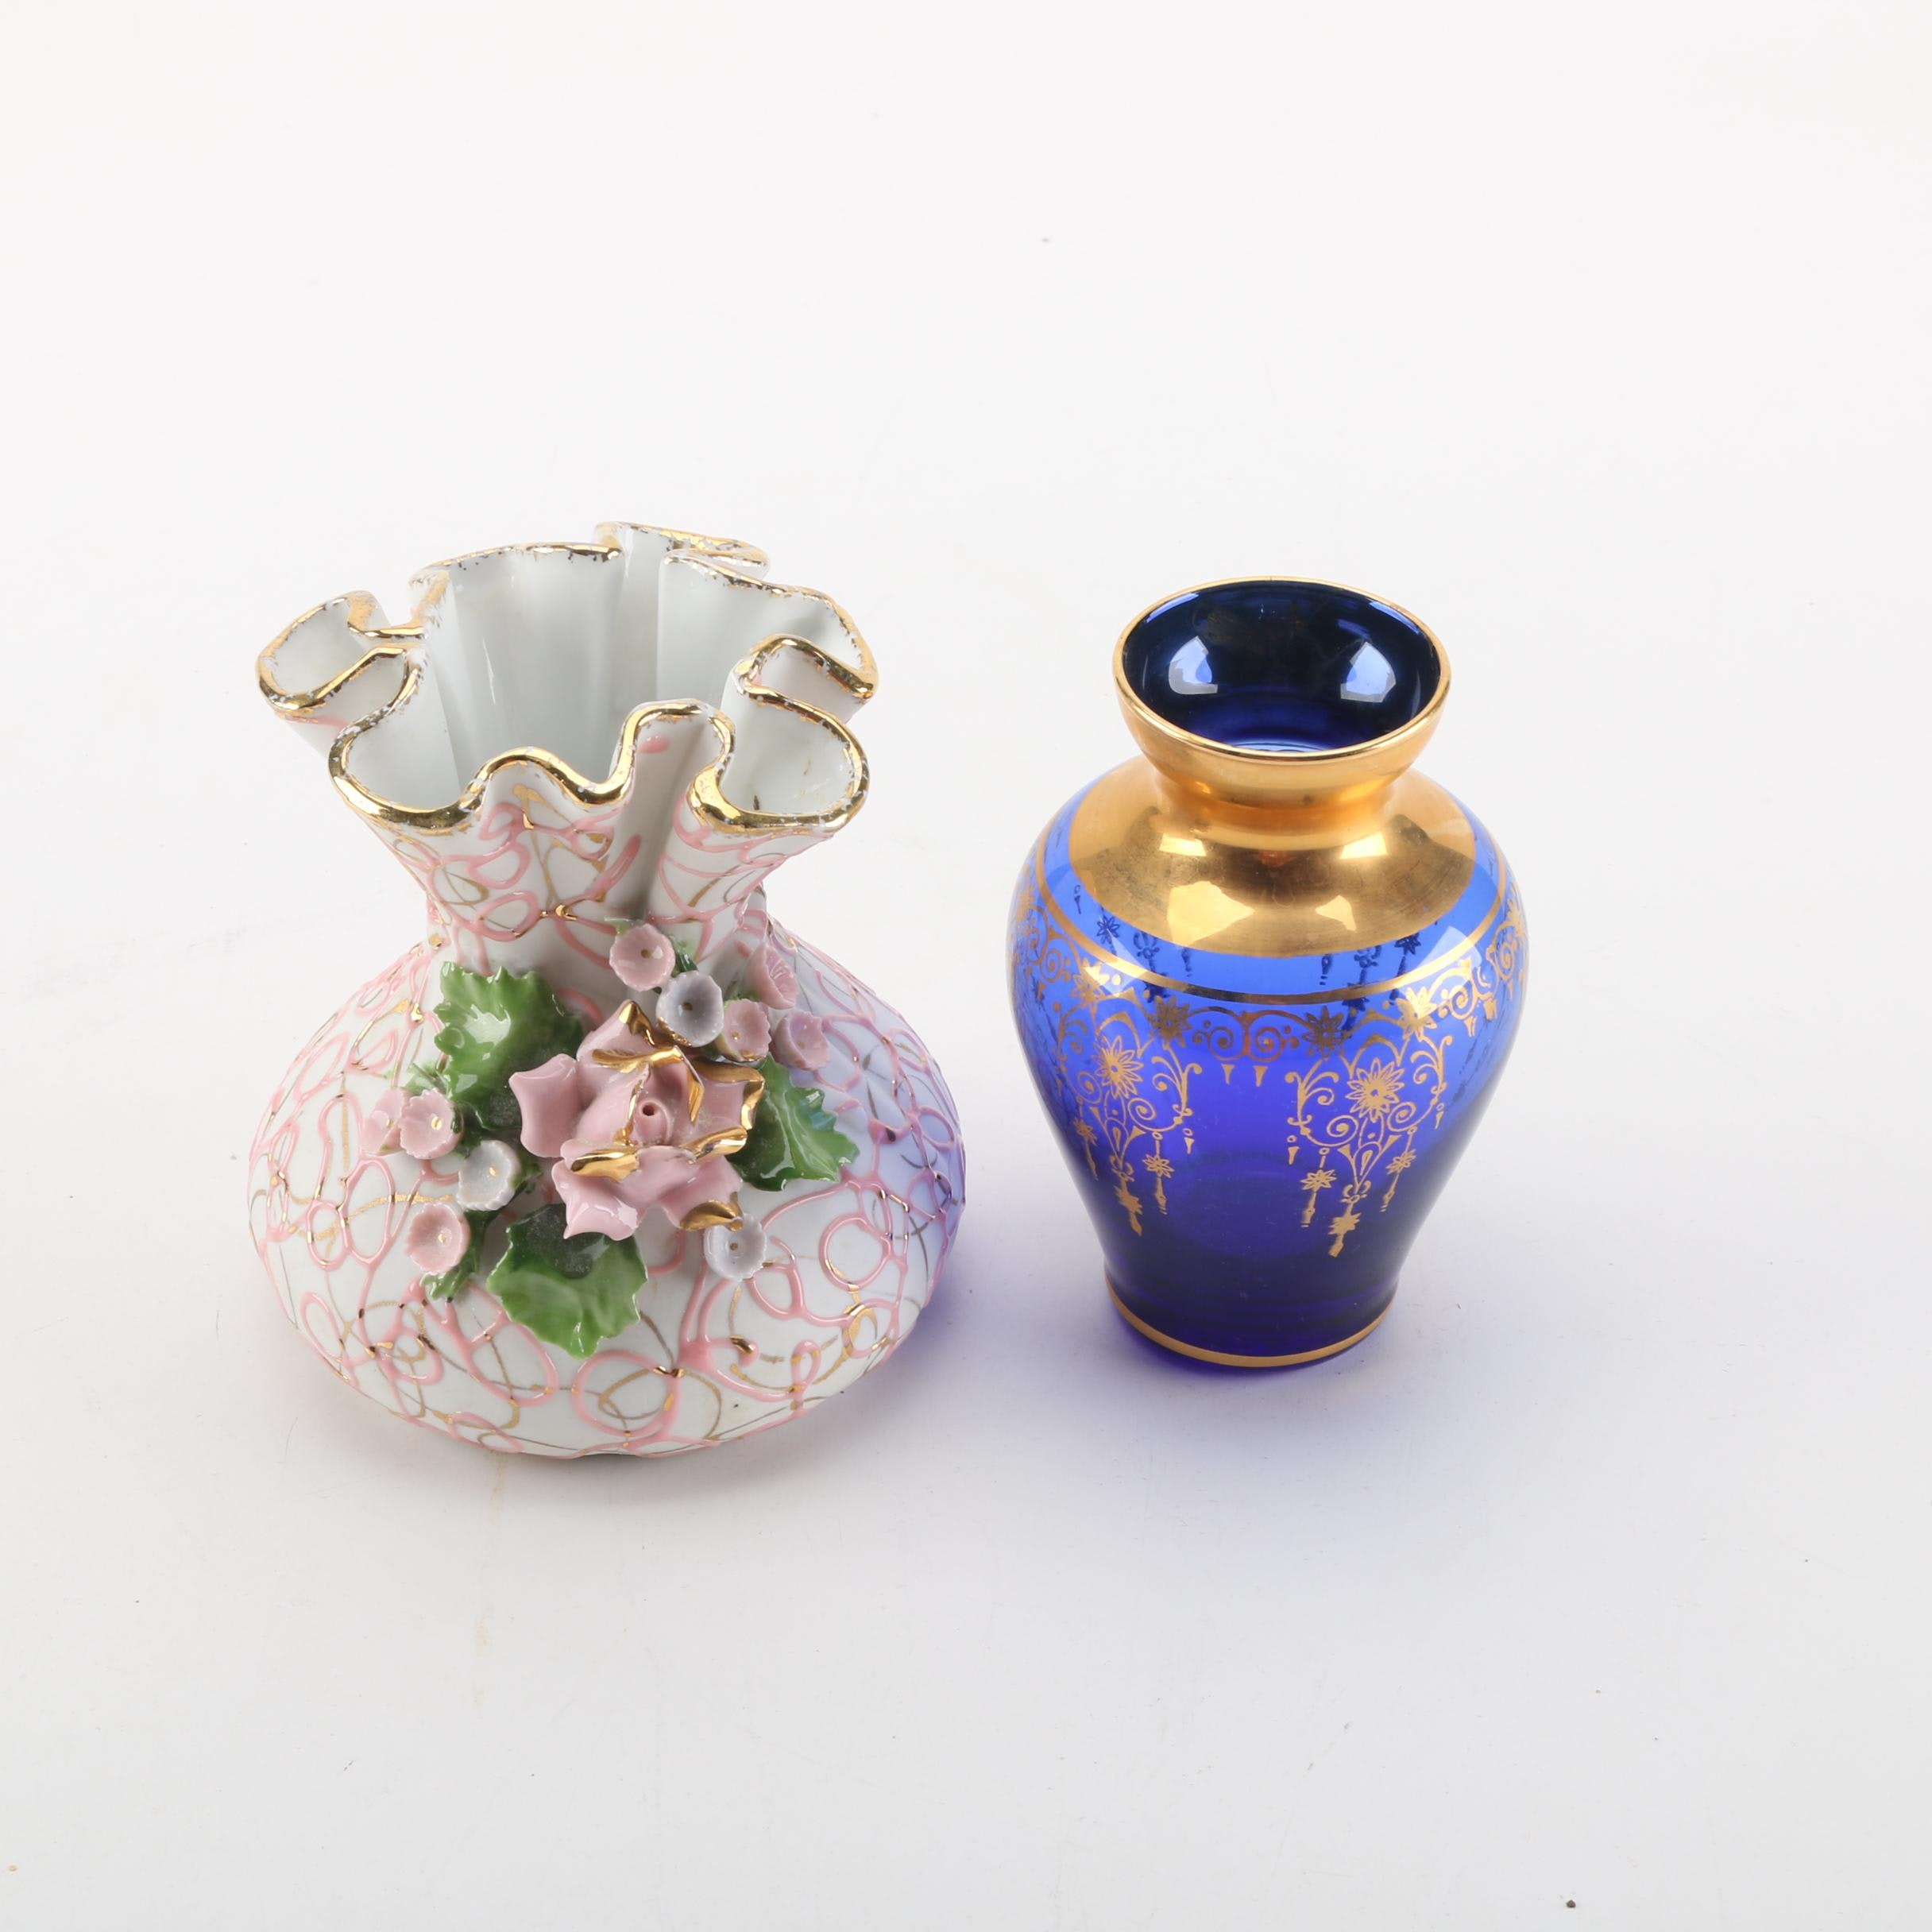 Hand Painted Lefton China Vase and Cobalt Blue Glass Vase